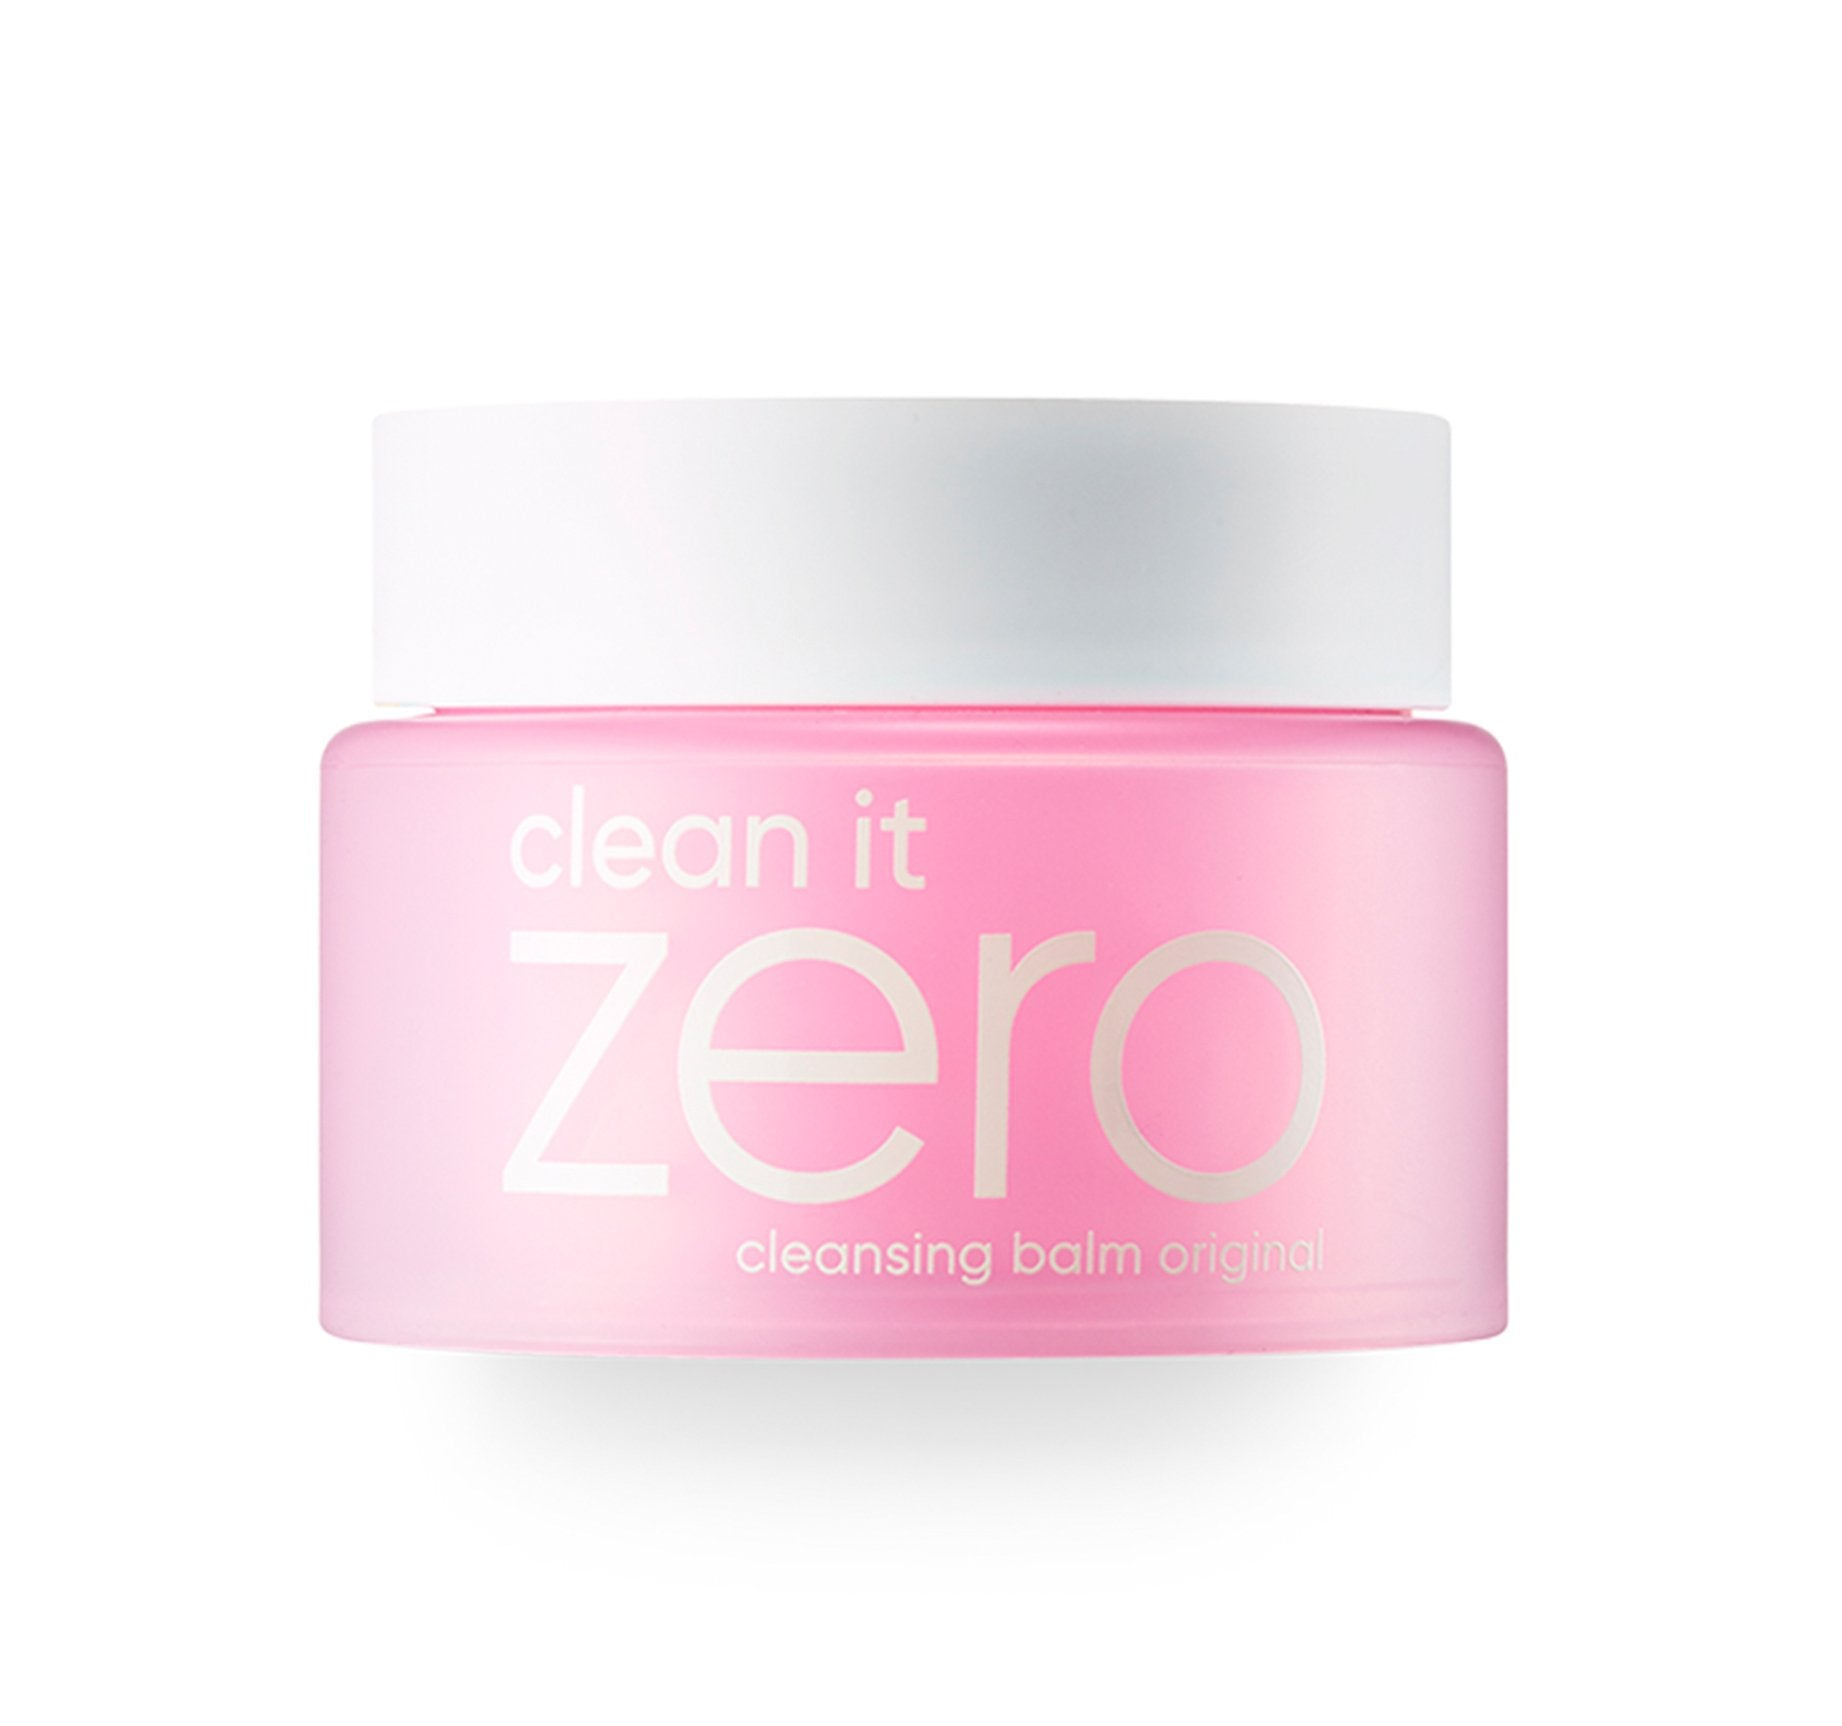 CLEAN IT ZERO 3-IN-1 CLEANSING BALM ORIGINAL, view larger image